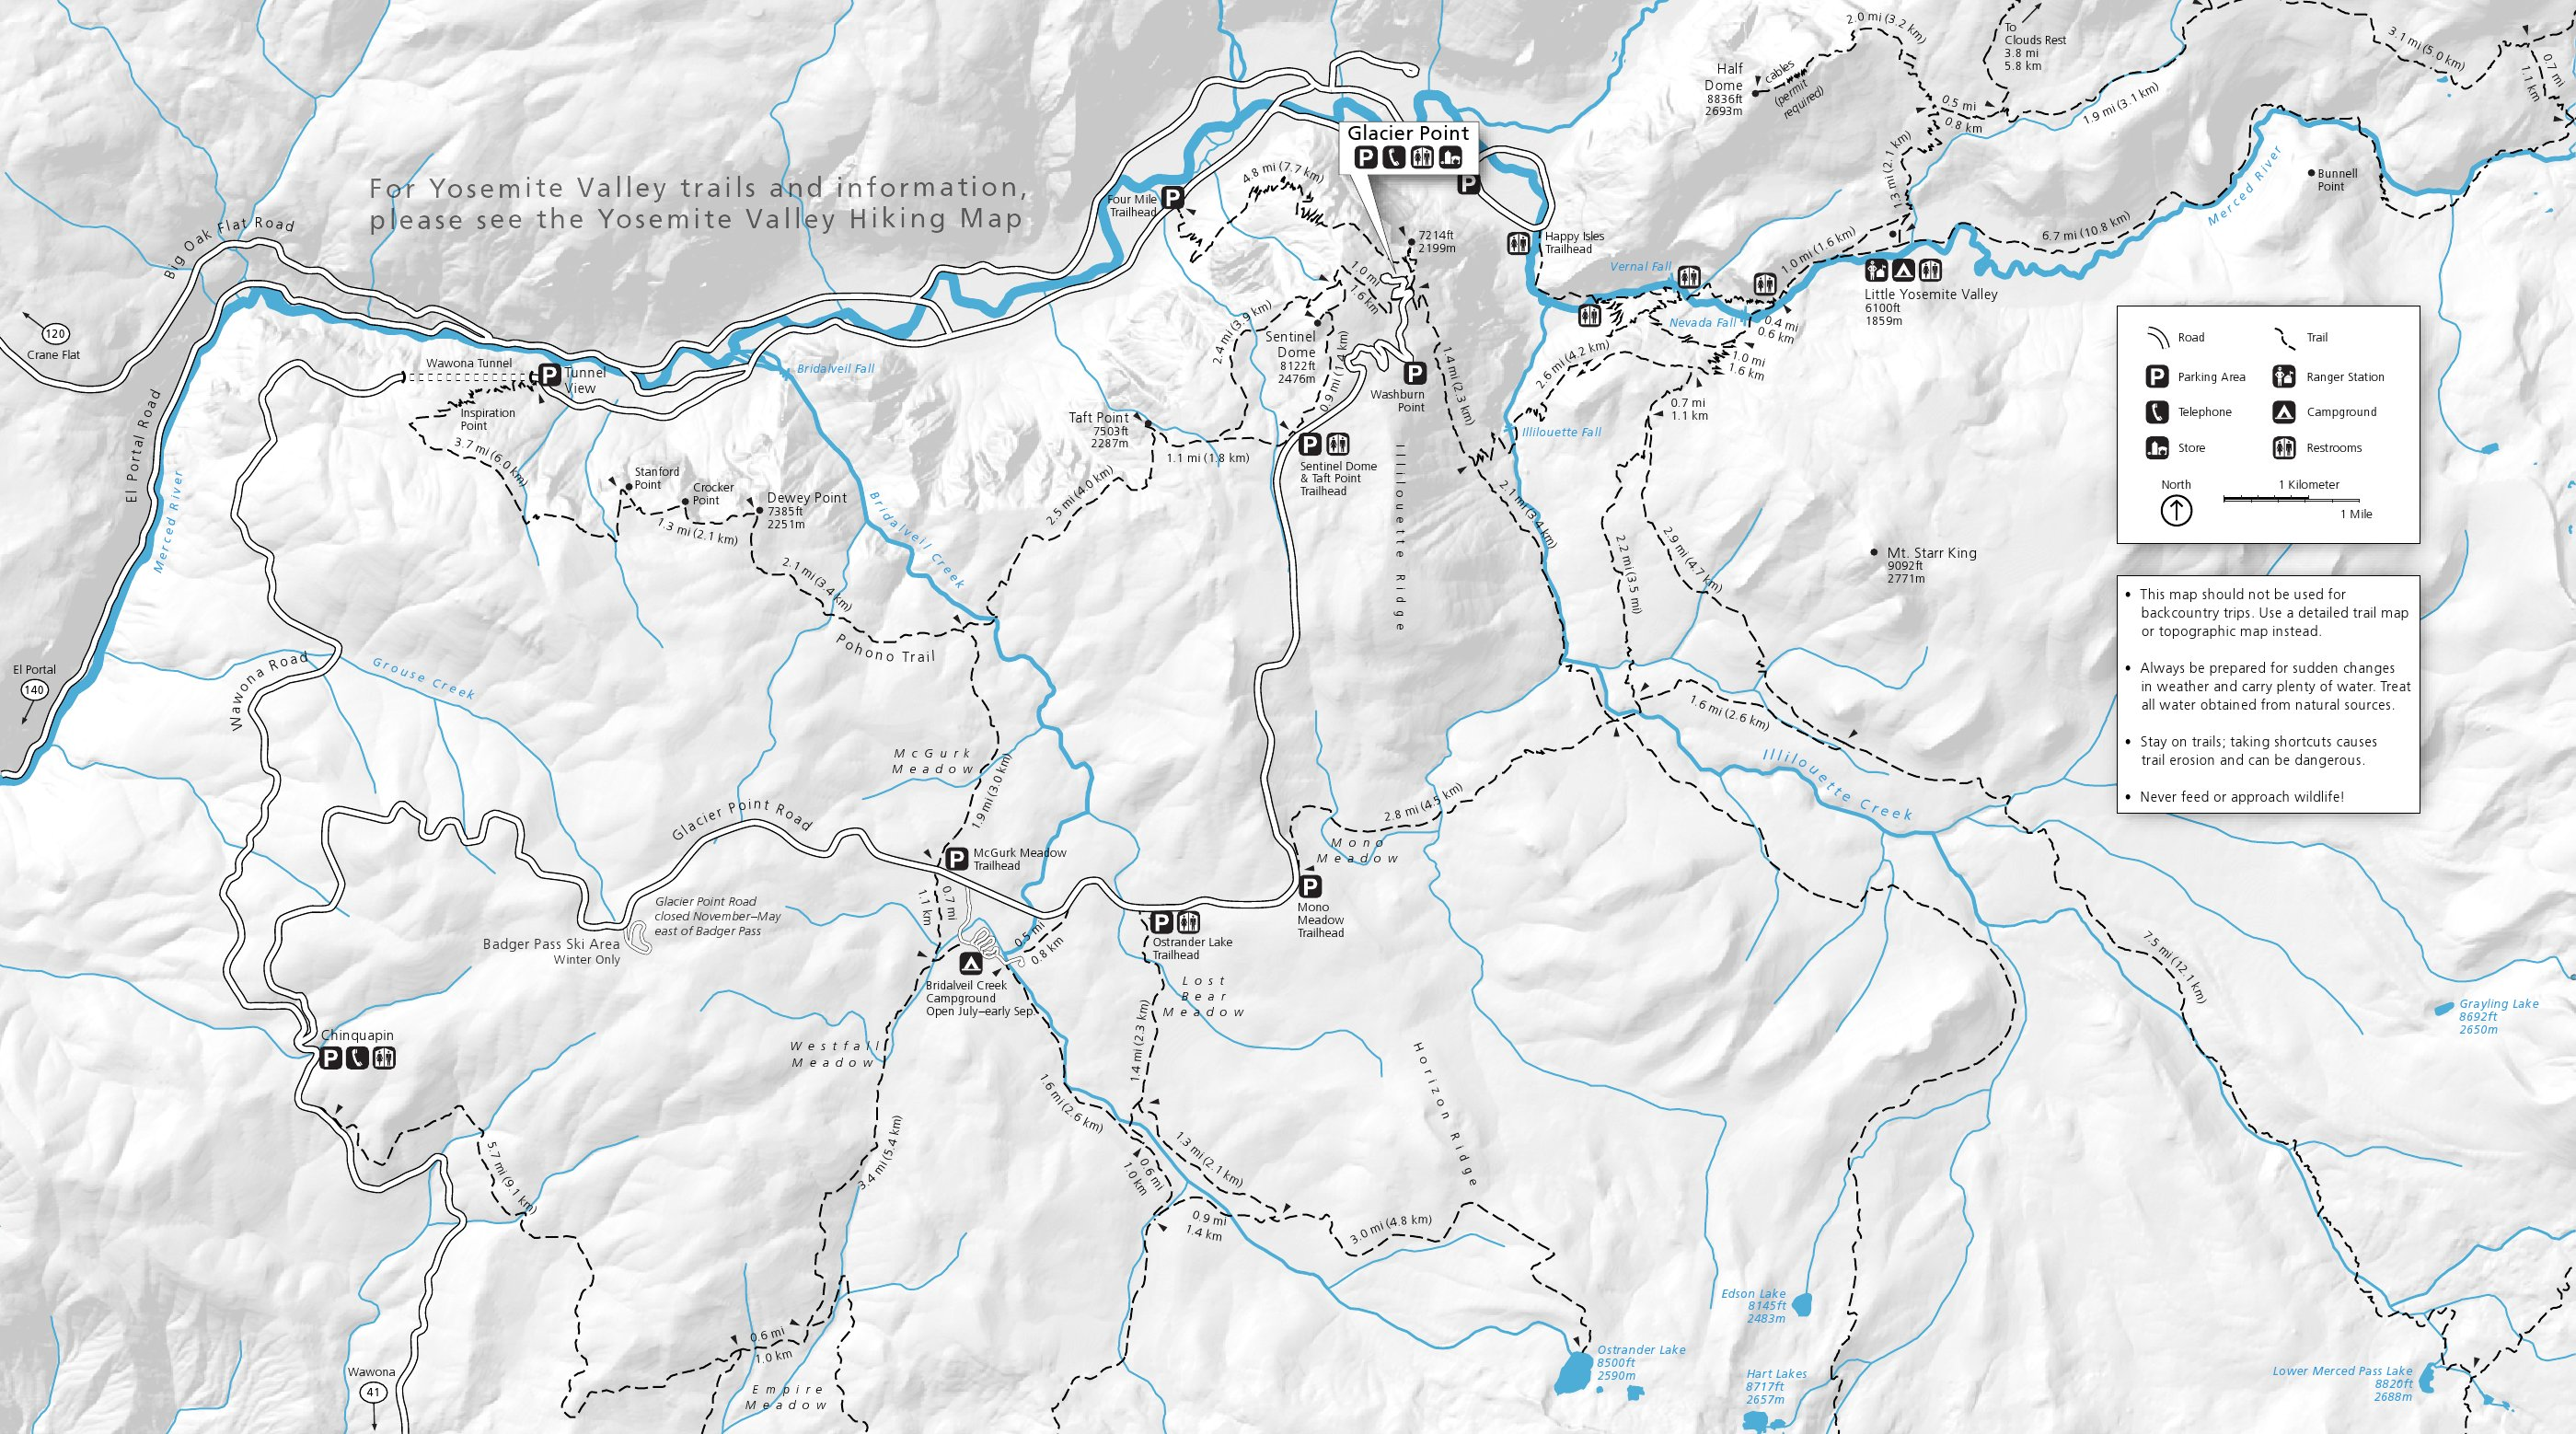 Yosemite Maps NPMapscom just free maps period